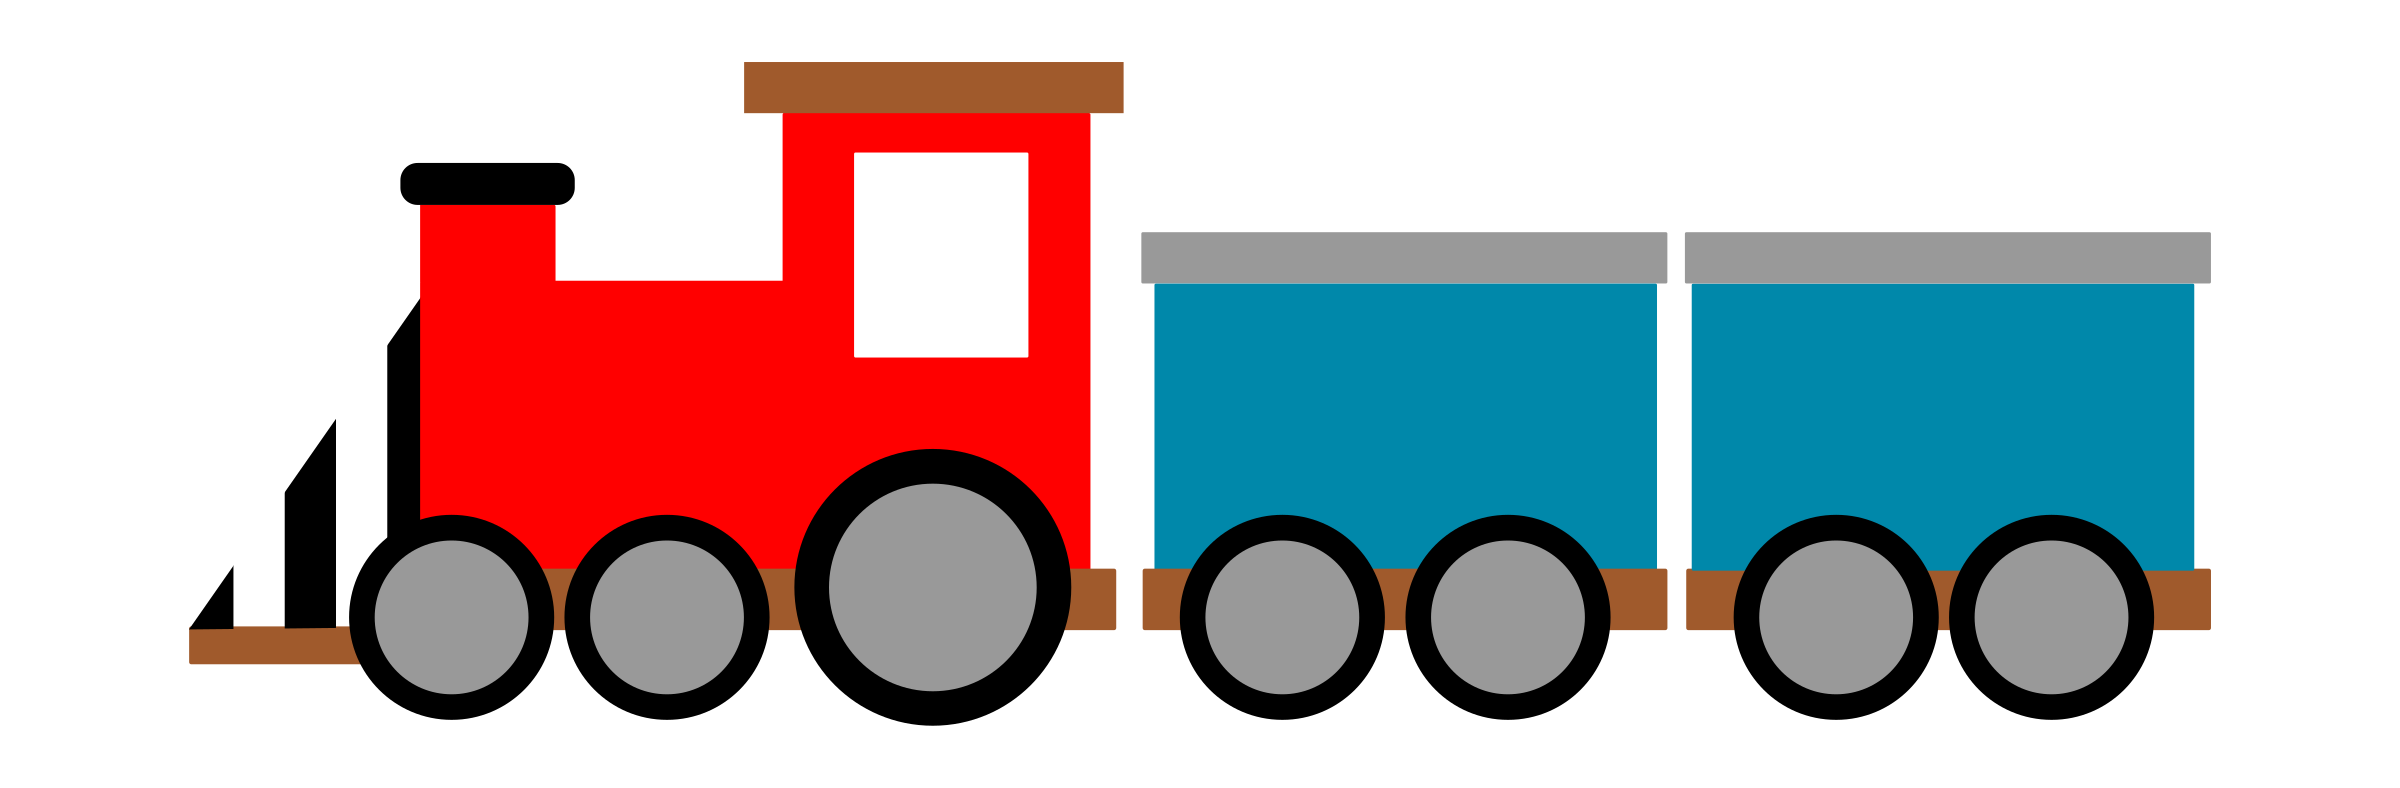 Free clipart train. Images download best on